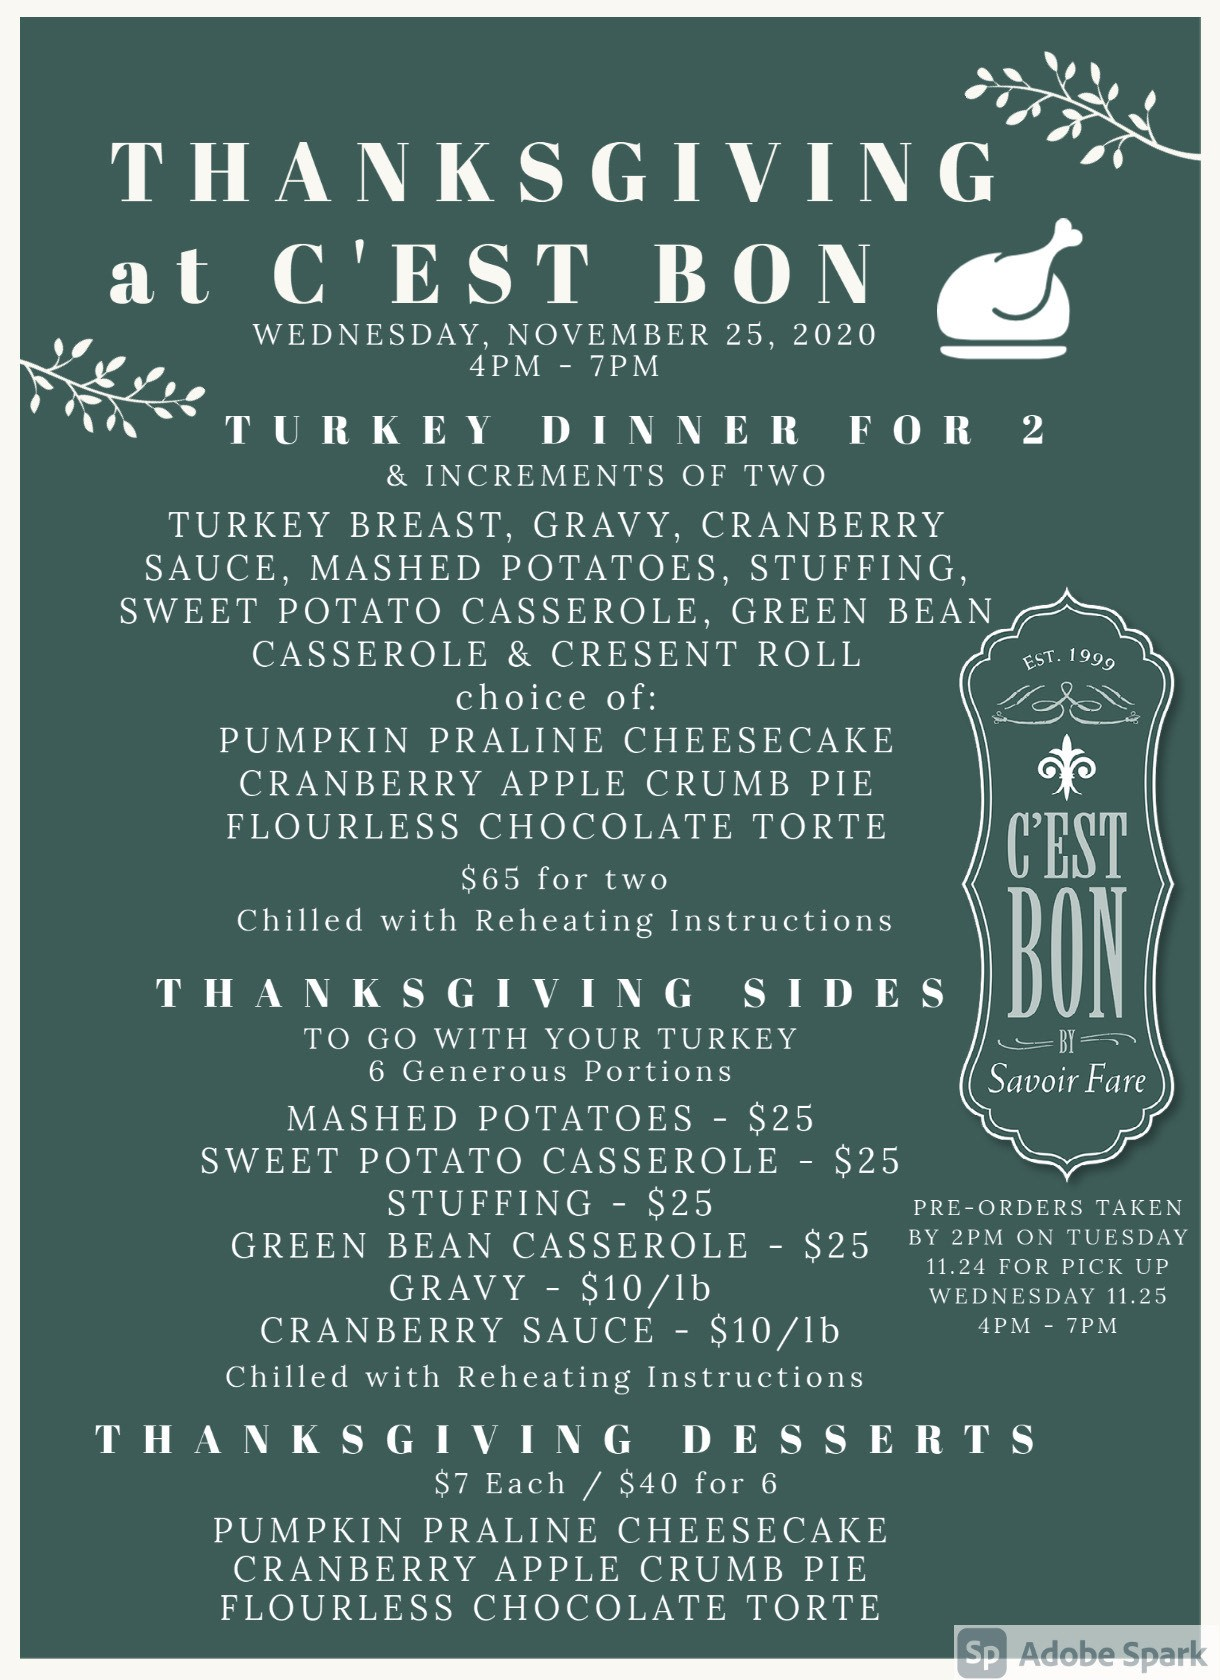 Thanksgiving Dinner at CEST BON